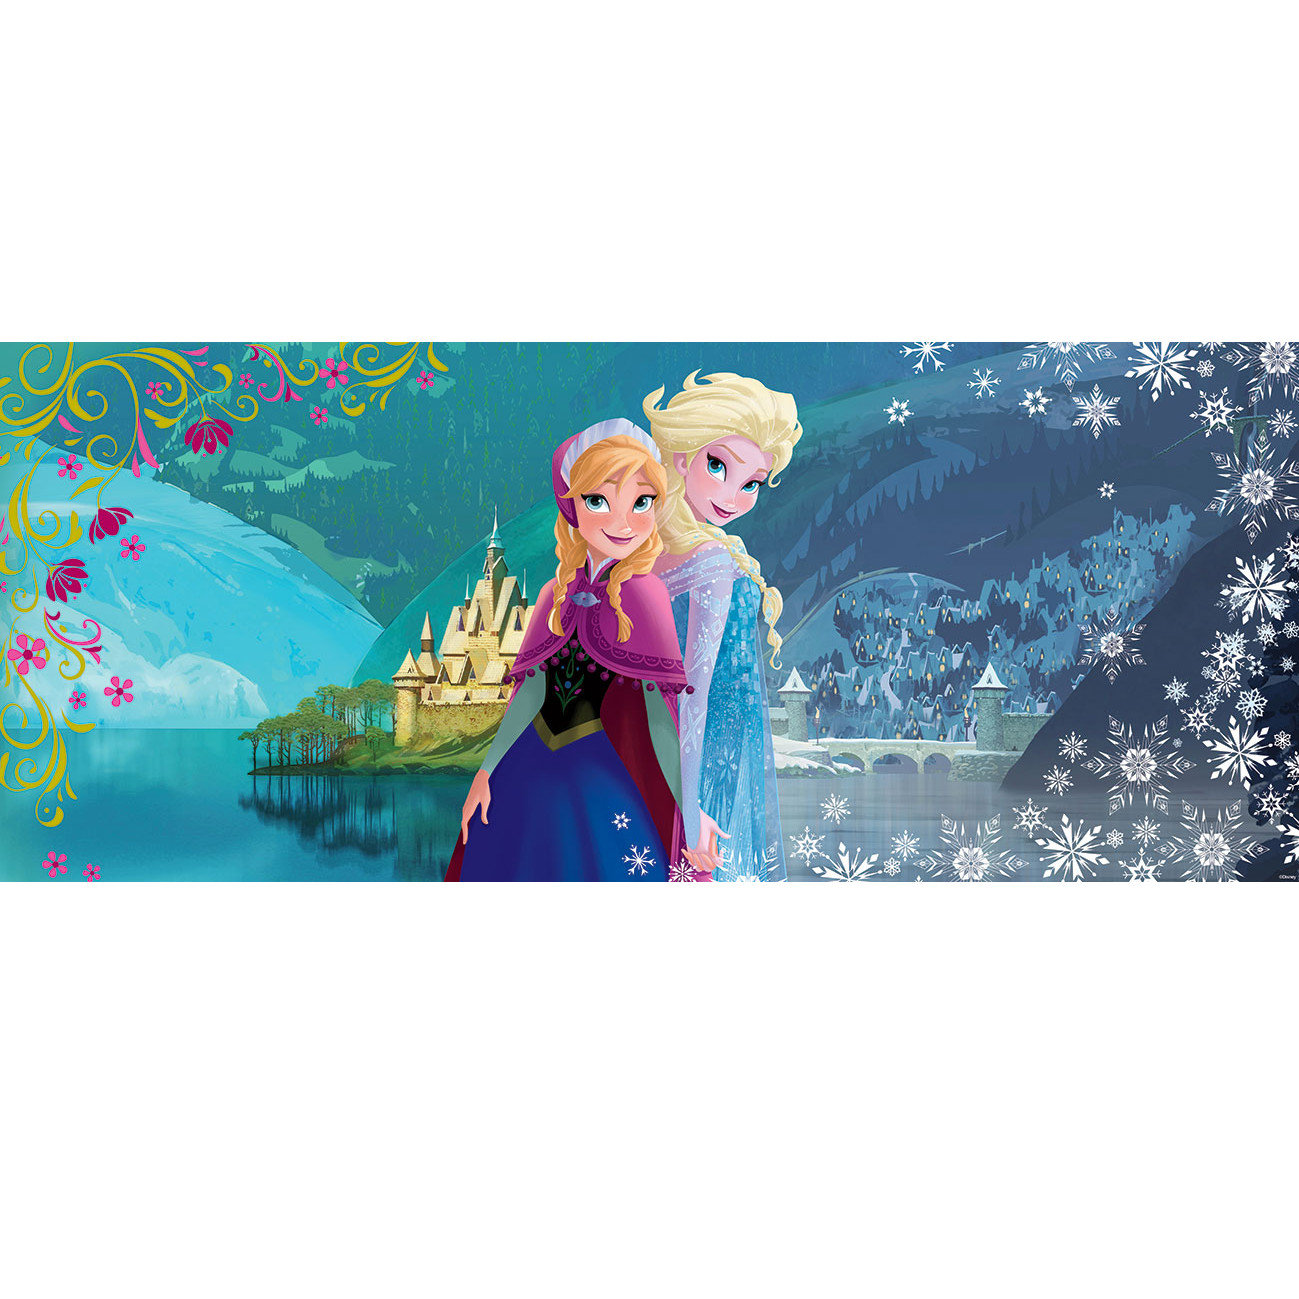 frozen reine des neiges poster panoramique papier peint 250 x 104 cm elsa et anna. Black Bedroom Furniture Sets. Home Design Ideas